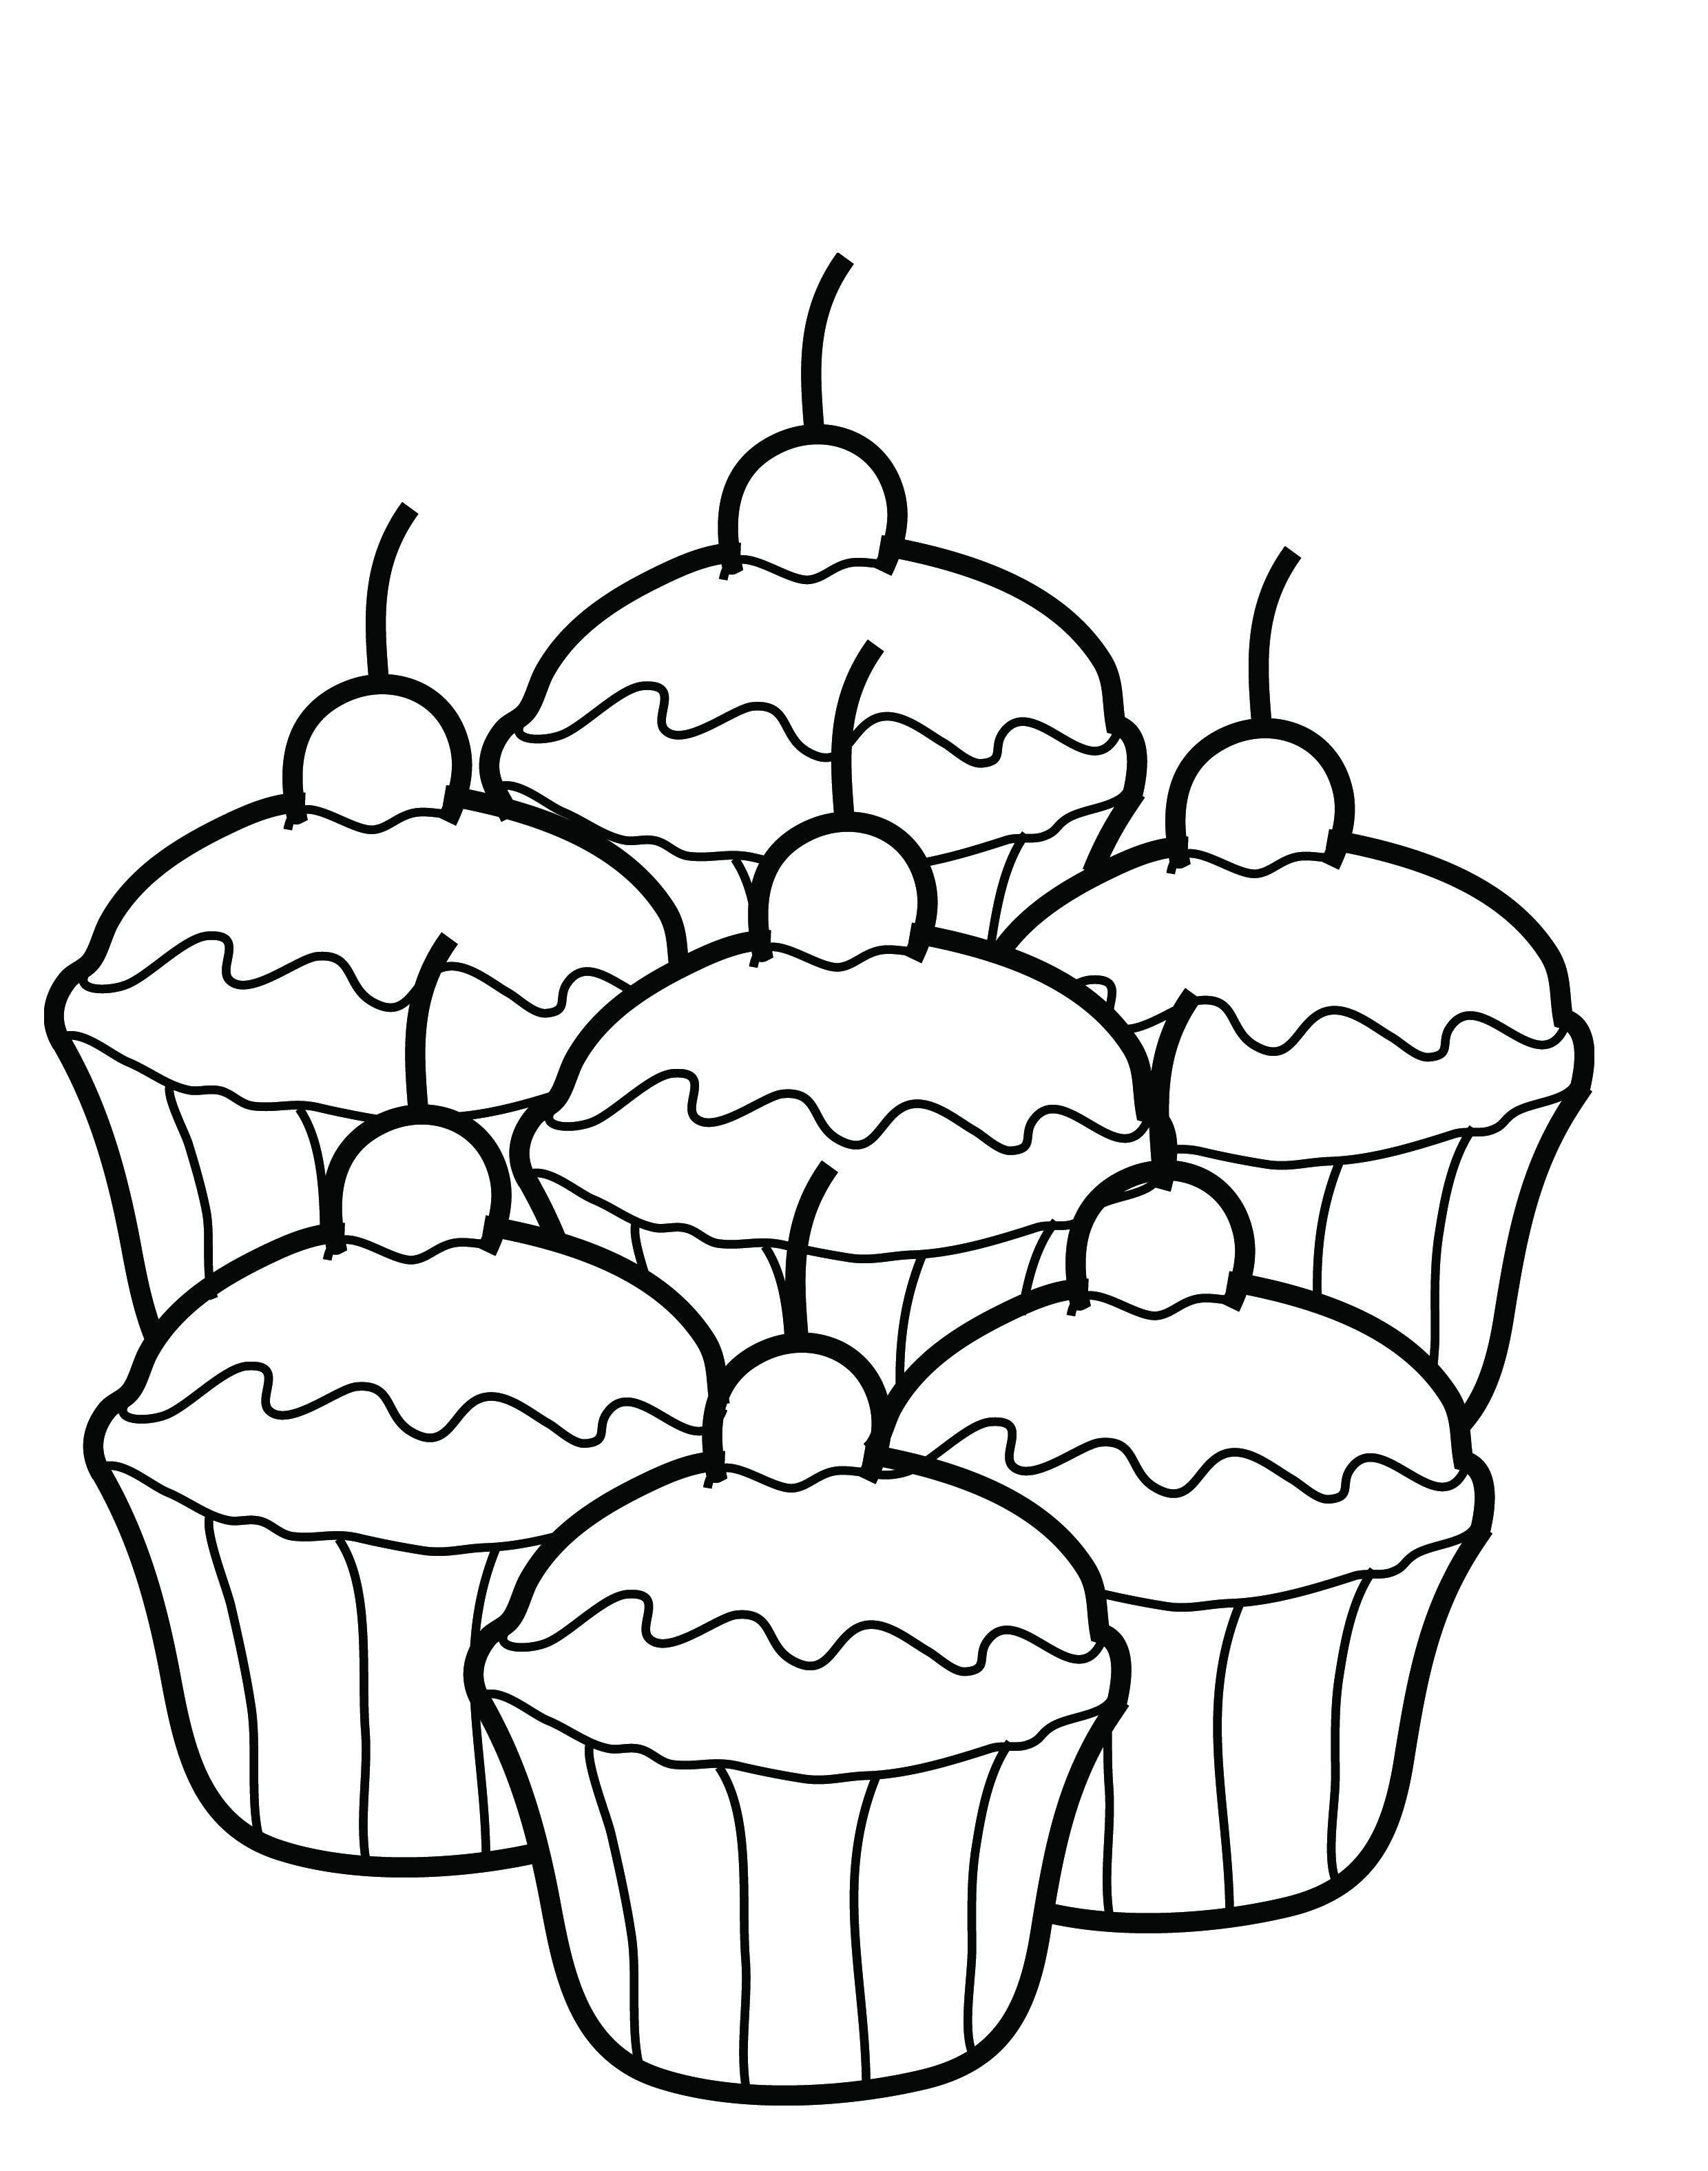 Free Printable Cupcake Coloring Pages For Kids Food Coloring Pages Kids Printable Coloring Pages Cupcake Coloring Pages